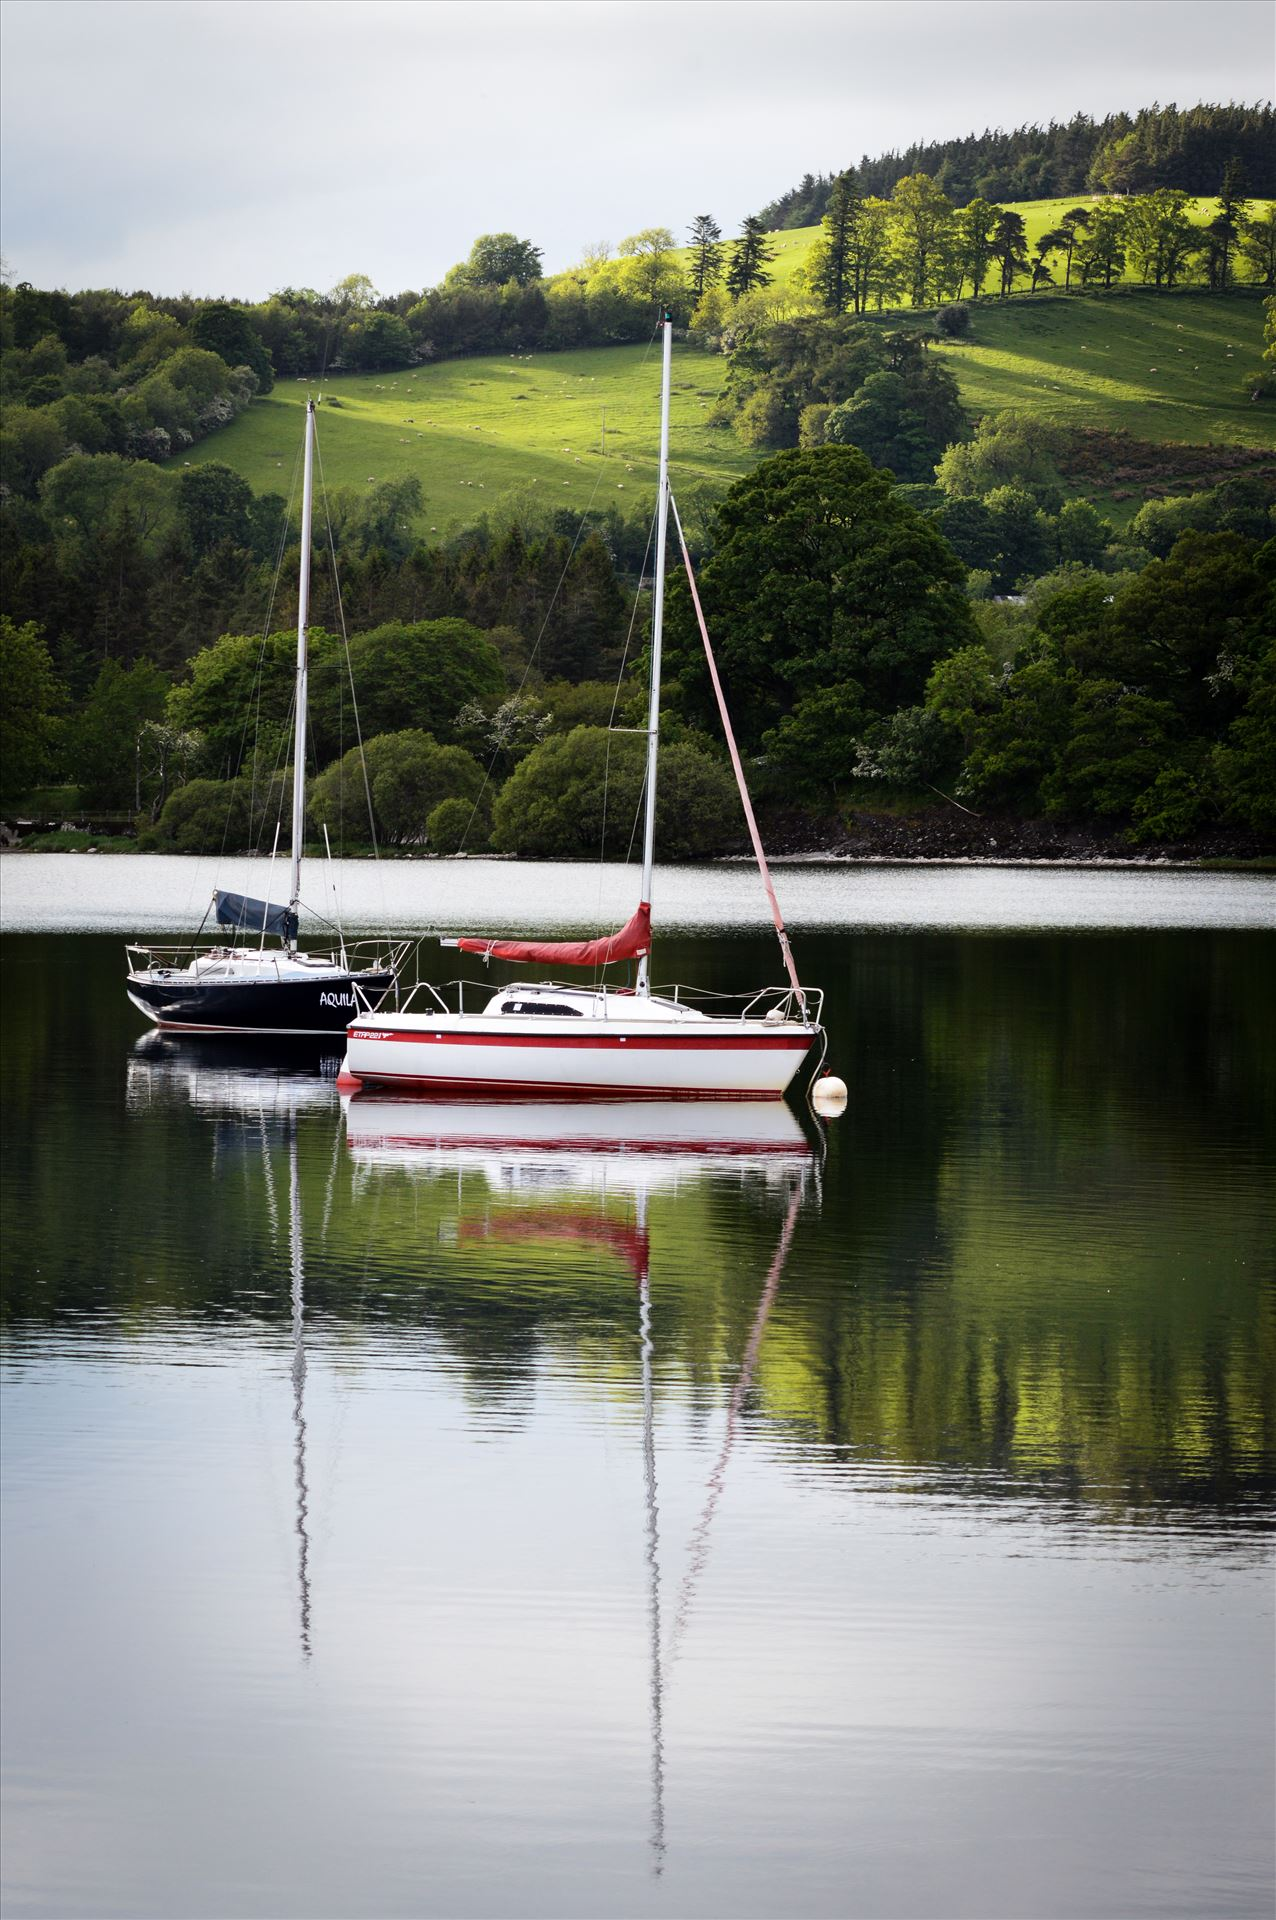 Reflections on Lake Ullswater - Reflections on a Lake by AJ Stoves Photography